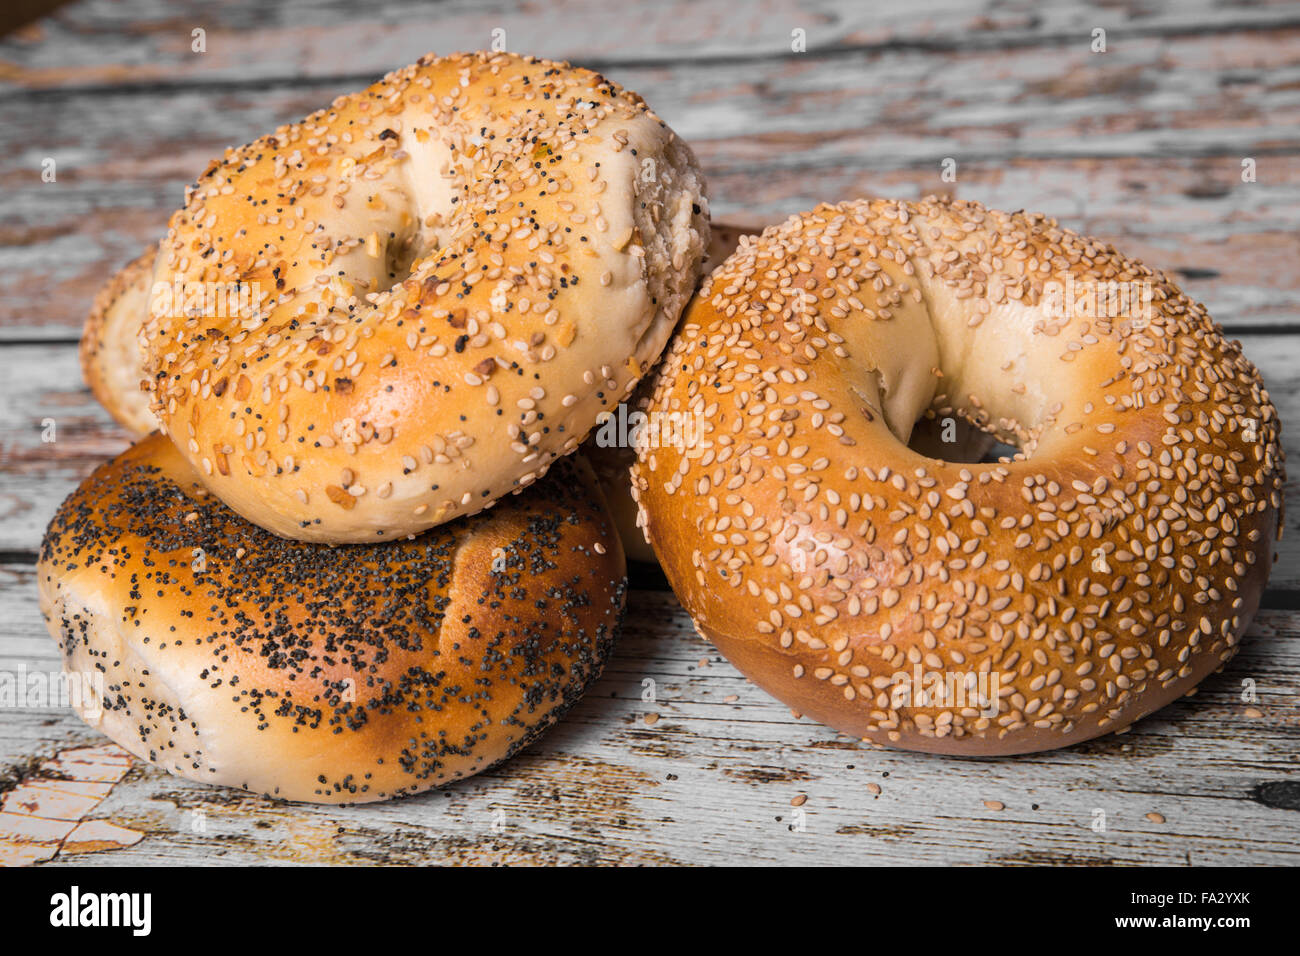 Authentic New York style bagels in several varieties with seeds - Stock Image